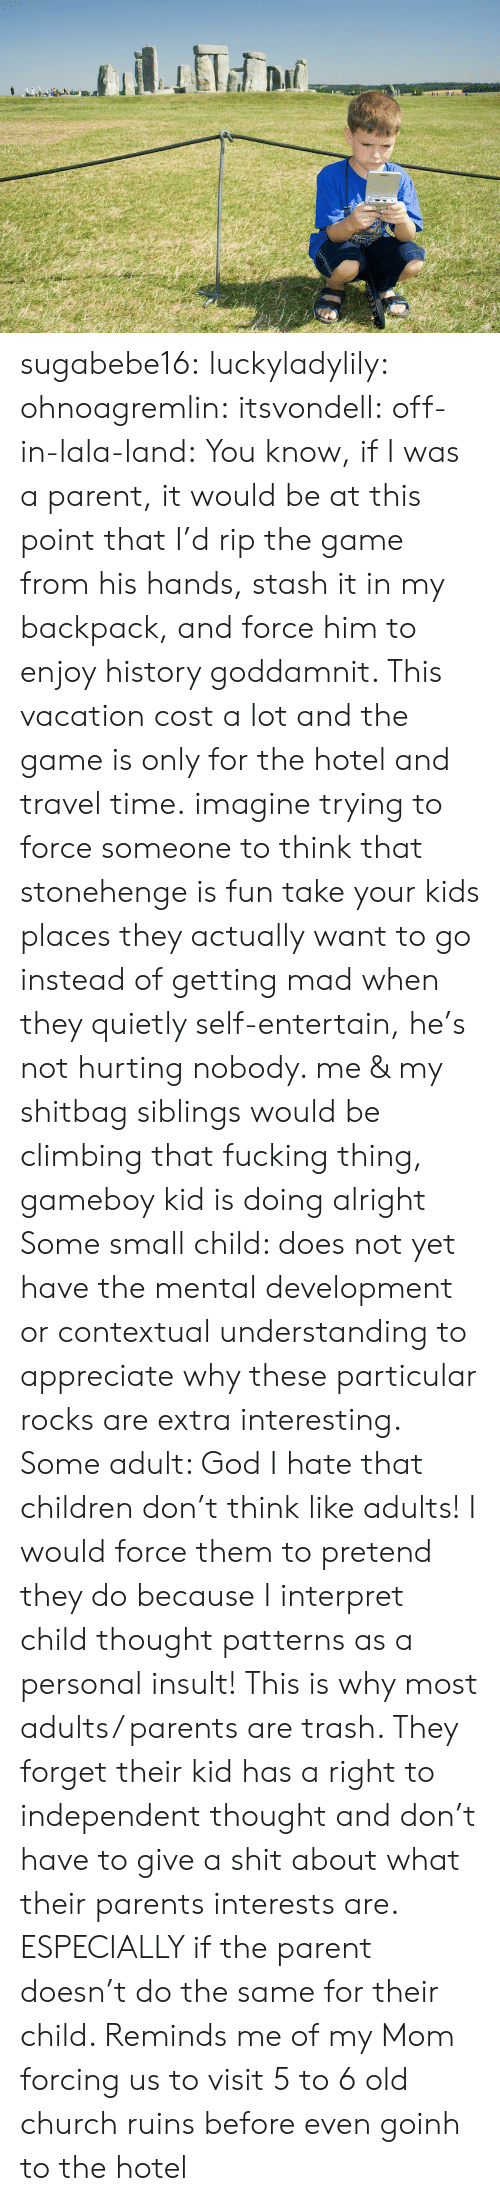 Children, Church, and Climbing: sugabebe16:  luckyladylily:  ohnoagremlin:  itsvondell:  off-in-lala-land:  You know, if I was a parent, it would be at this point that I'd rip the game from his hands, stash it in my backpack, and force him to enjoy history goddamnit. This vacation cost a lot and the game is only for the hotel and travel time.  imagine trying to force someone to think that stonehenge is fun   take your kids places they actually want to go instead of getting mad when they quietly self-entertain, he's not hurting nobody. me & my shitbag siblings would be climbing that fucking thing, gameboy kid is doing alright    Some small child: does not yet have the mental development or contextual understanding to appreciate why these particular rocks are extra interesting. Some adult: God I hate that children don't think like adults! I would force them to pretend they do because I interpret child thought patterns as a personal insult!   This is why most adults/ parents are trash. They forget their kid has a right to independent thought and don't have to give a shit about what their parents interests are. ESPECIALLY if the parent doesn't do the same for their child.   Reminds me of my Mom forcing us to visit 5 to 6 old church ruins before even goinh to the hotel